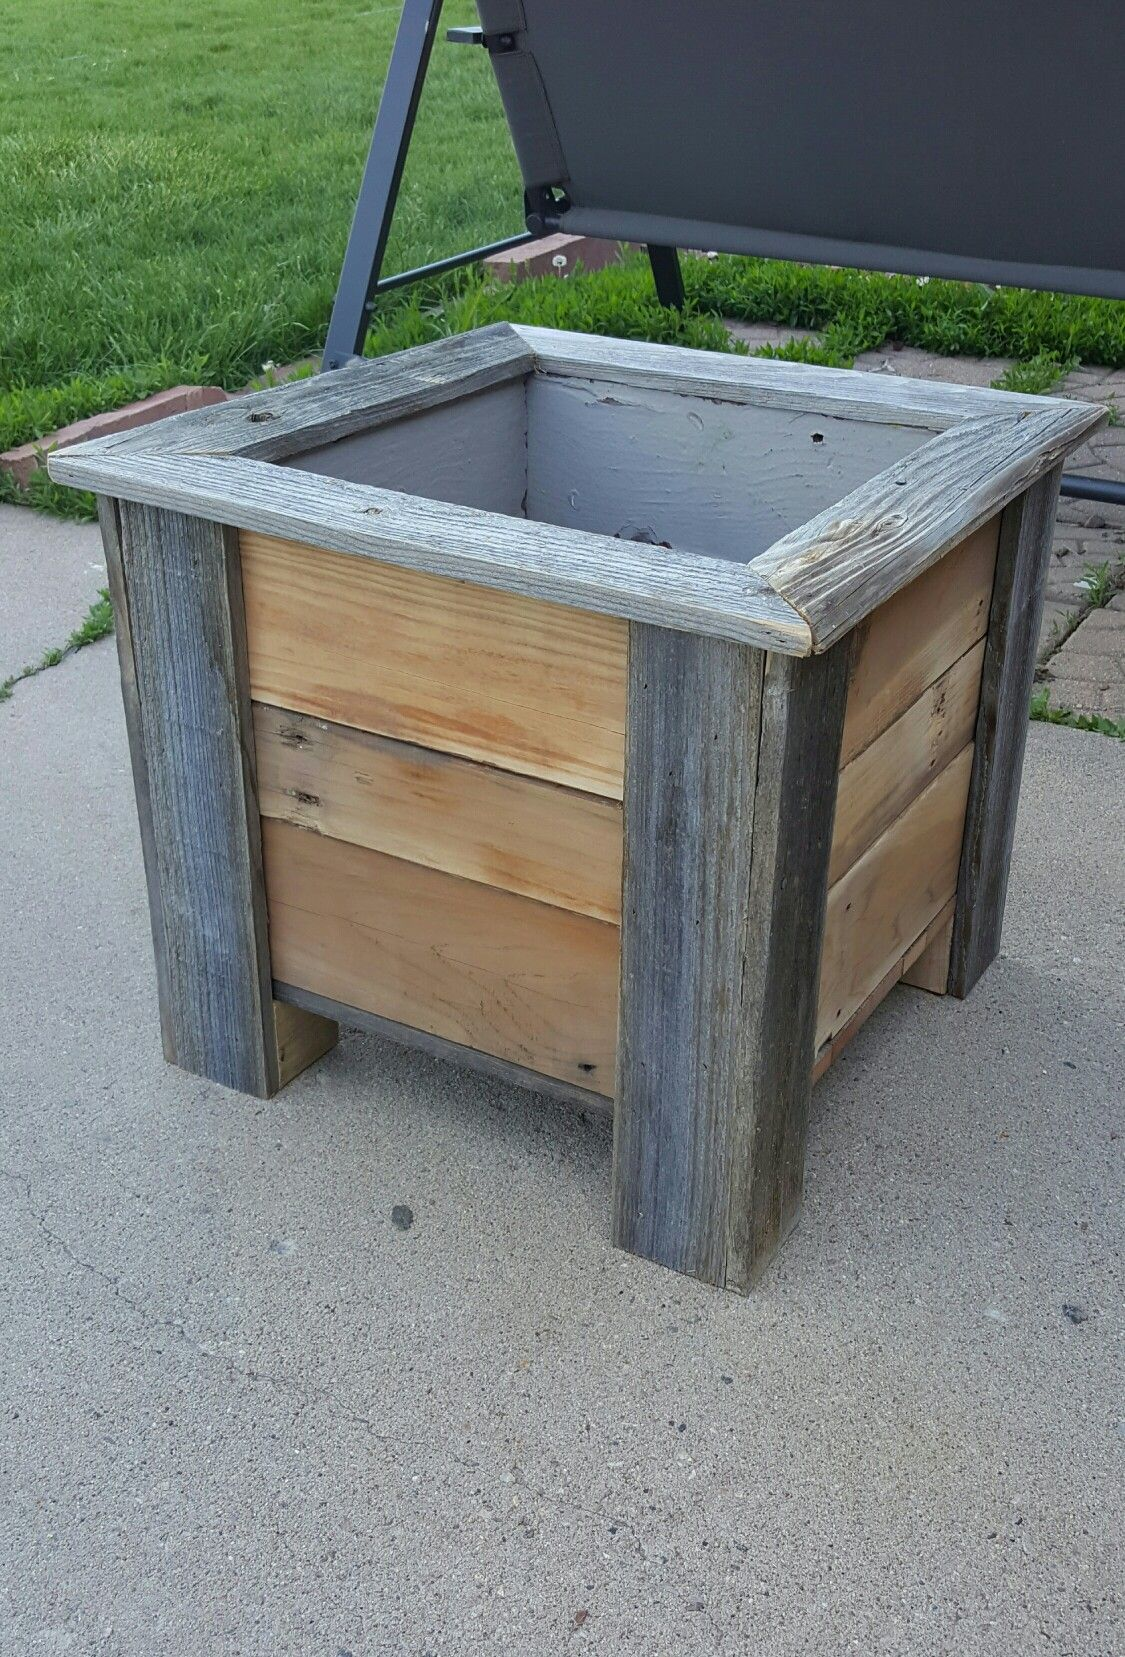 Reclaimed Wood Planter Outdoor Planter Boxes Wood Planters Wood Planter Box